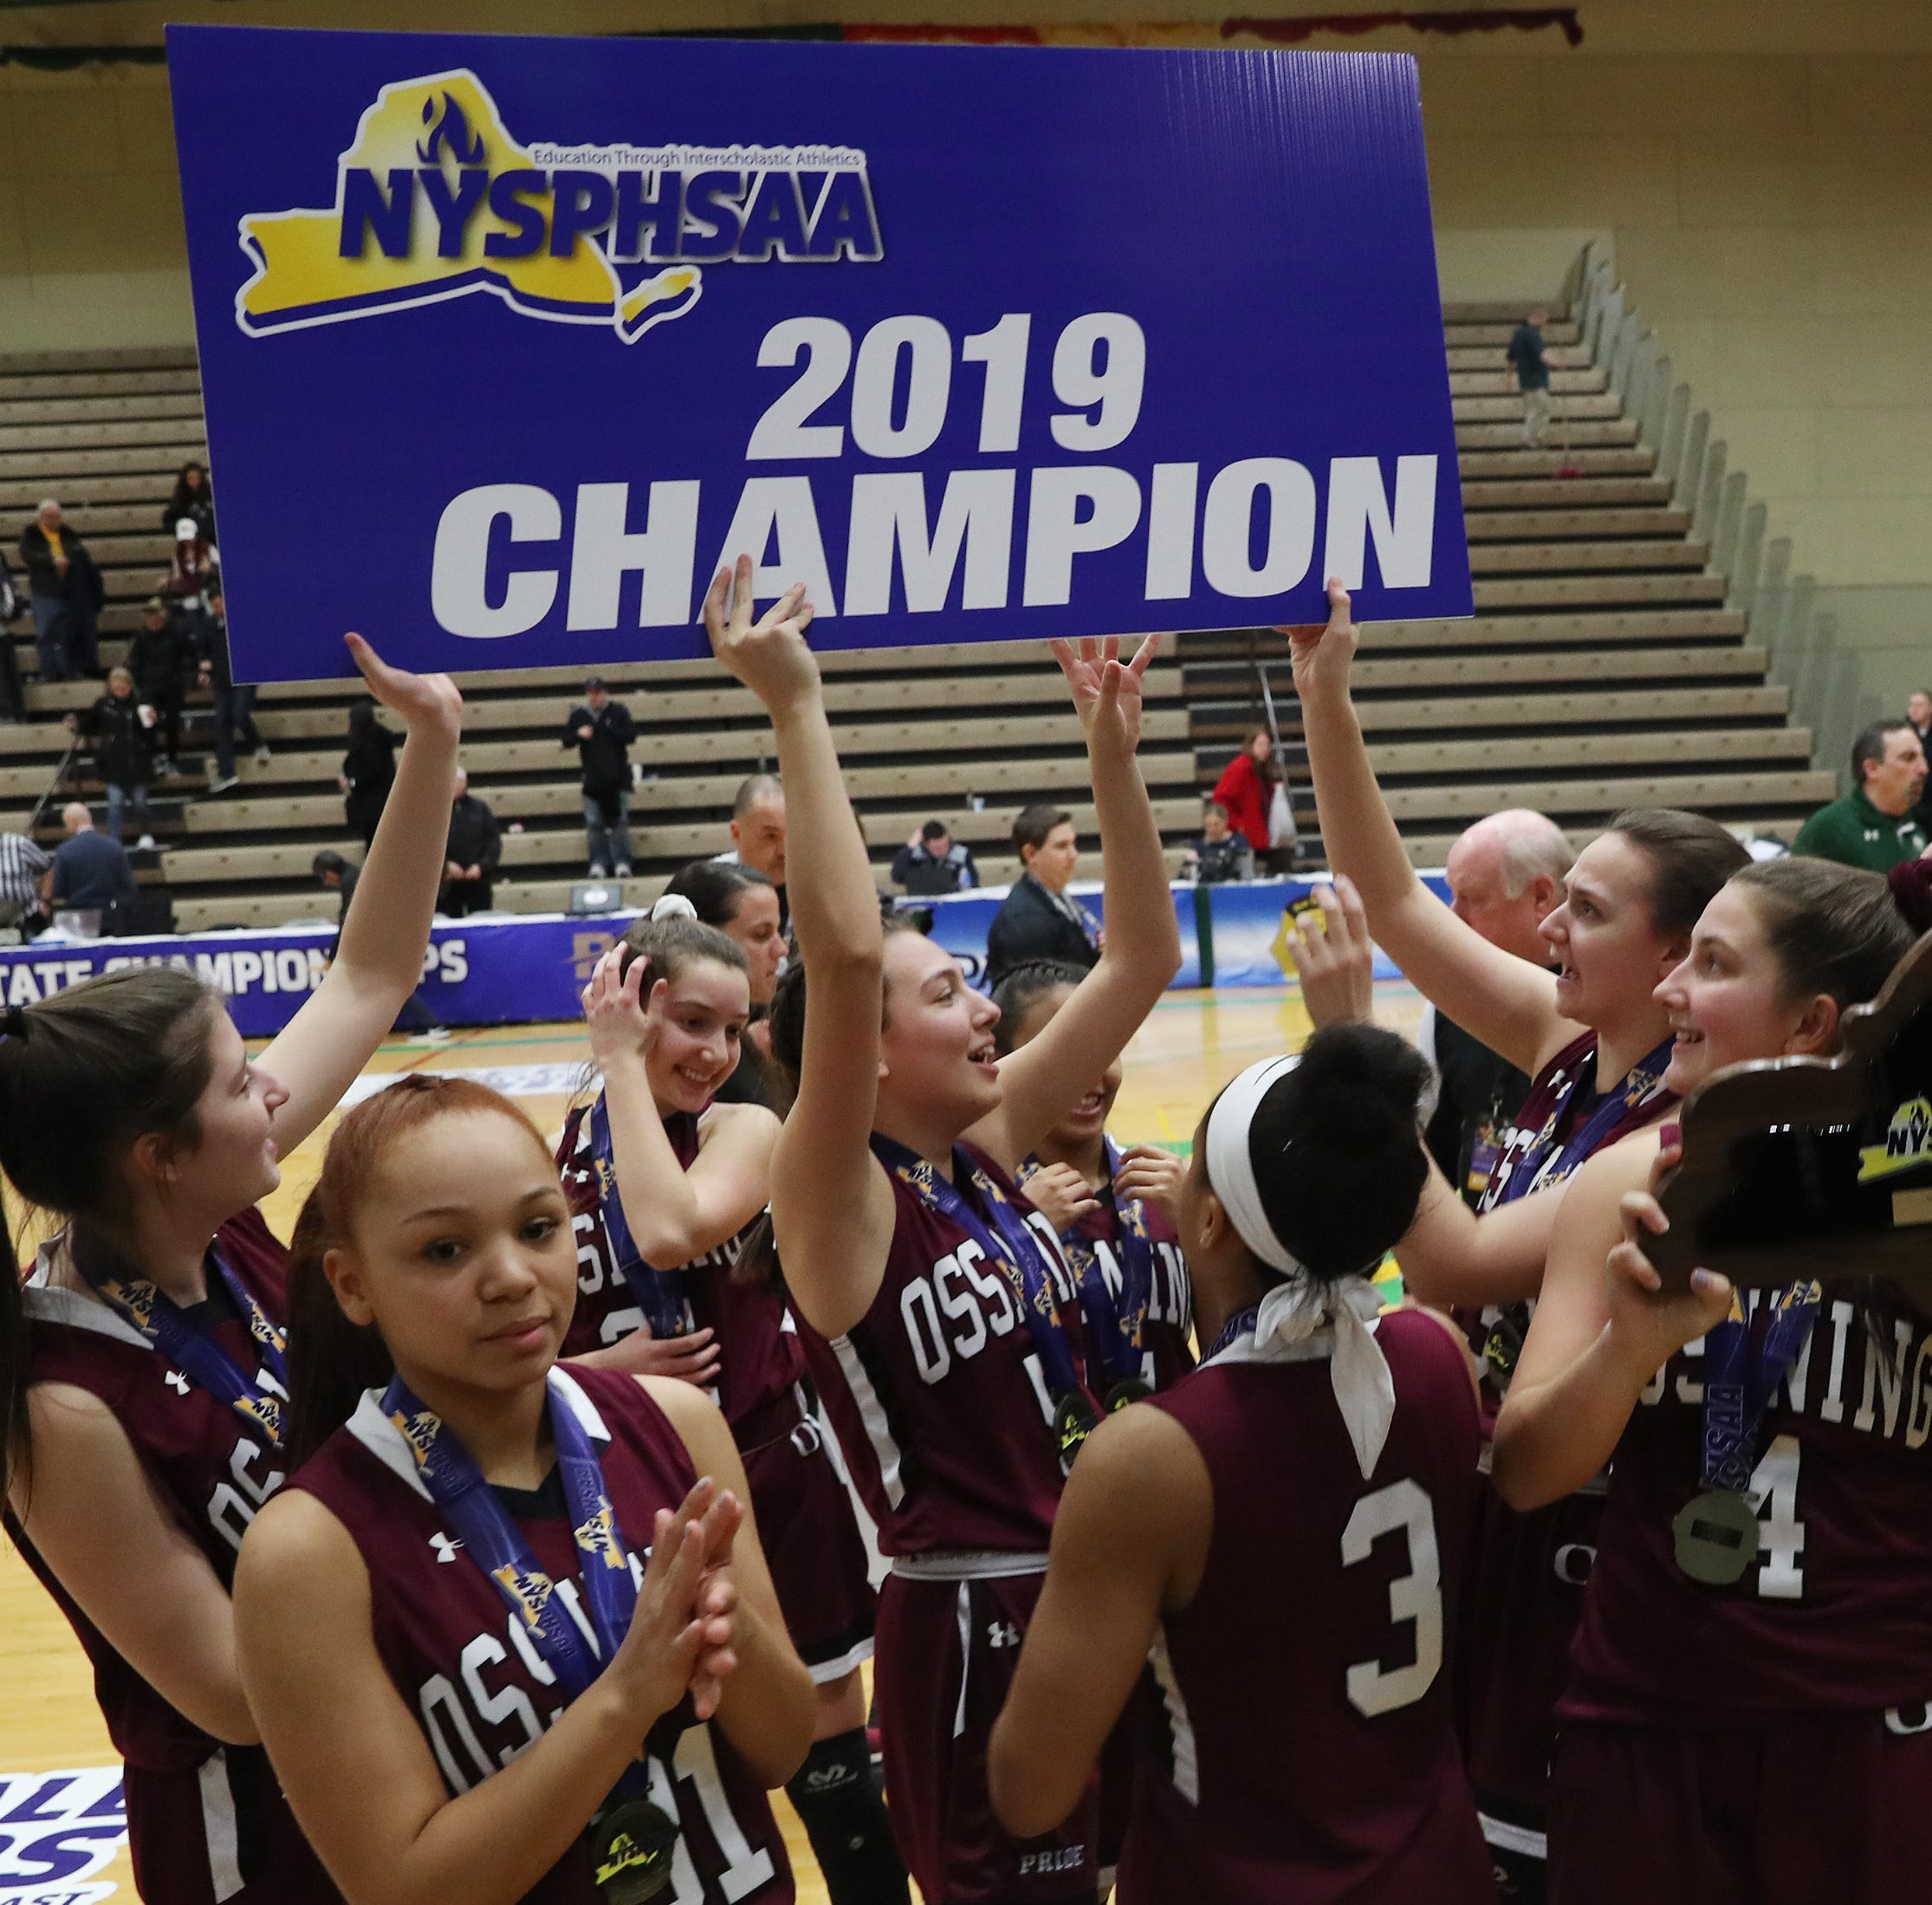 Girls basketball: Ossining dominates West Genesee for Class AA state championship